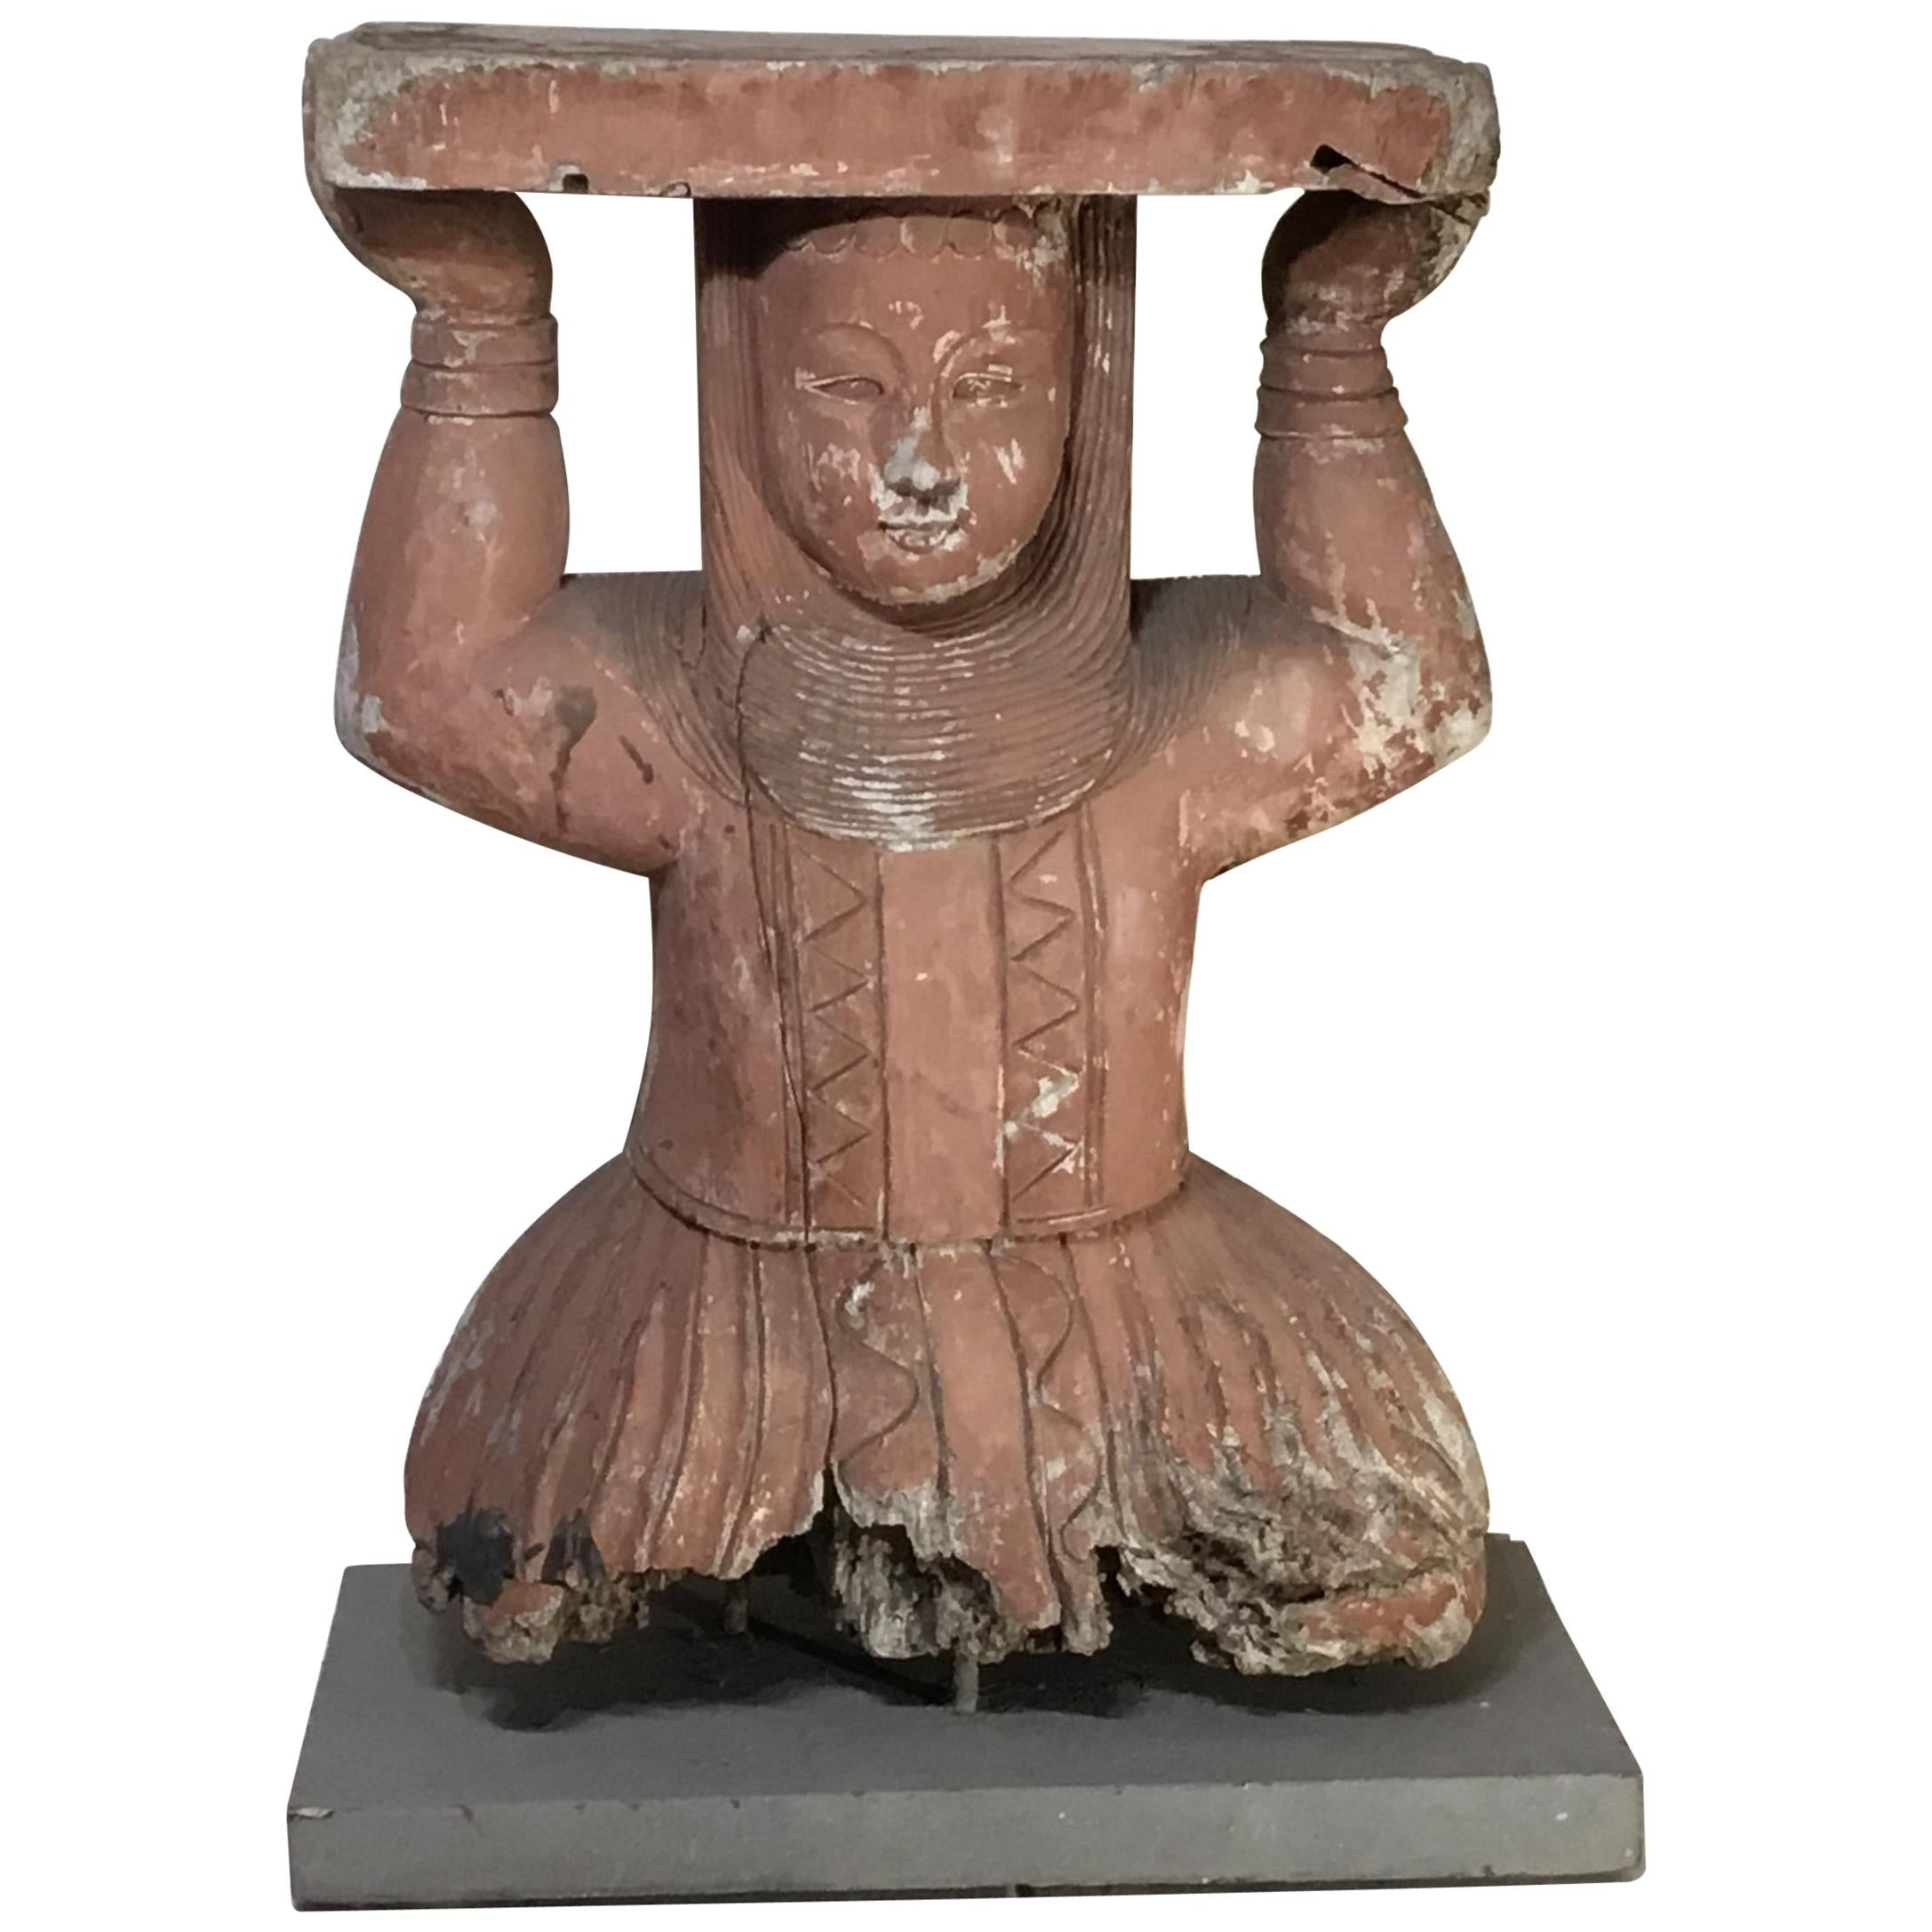 Wood carved totem pole figure for sale carvings carving tools on